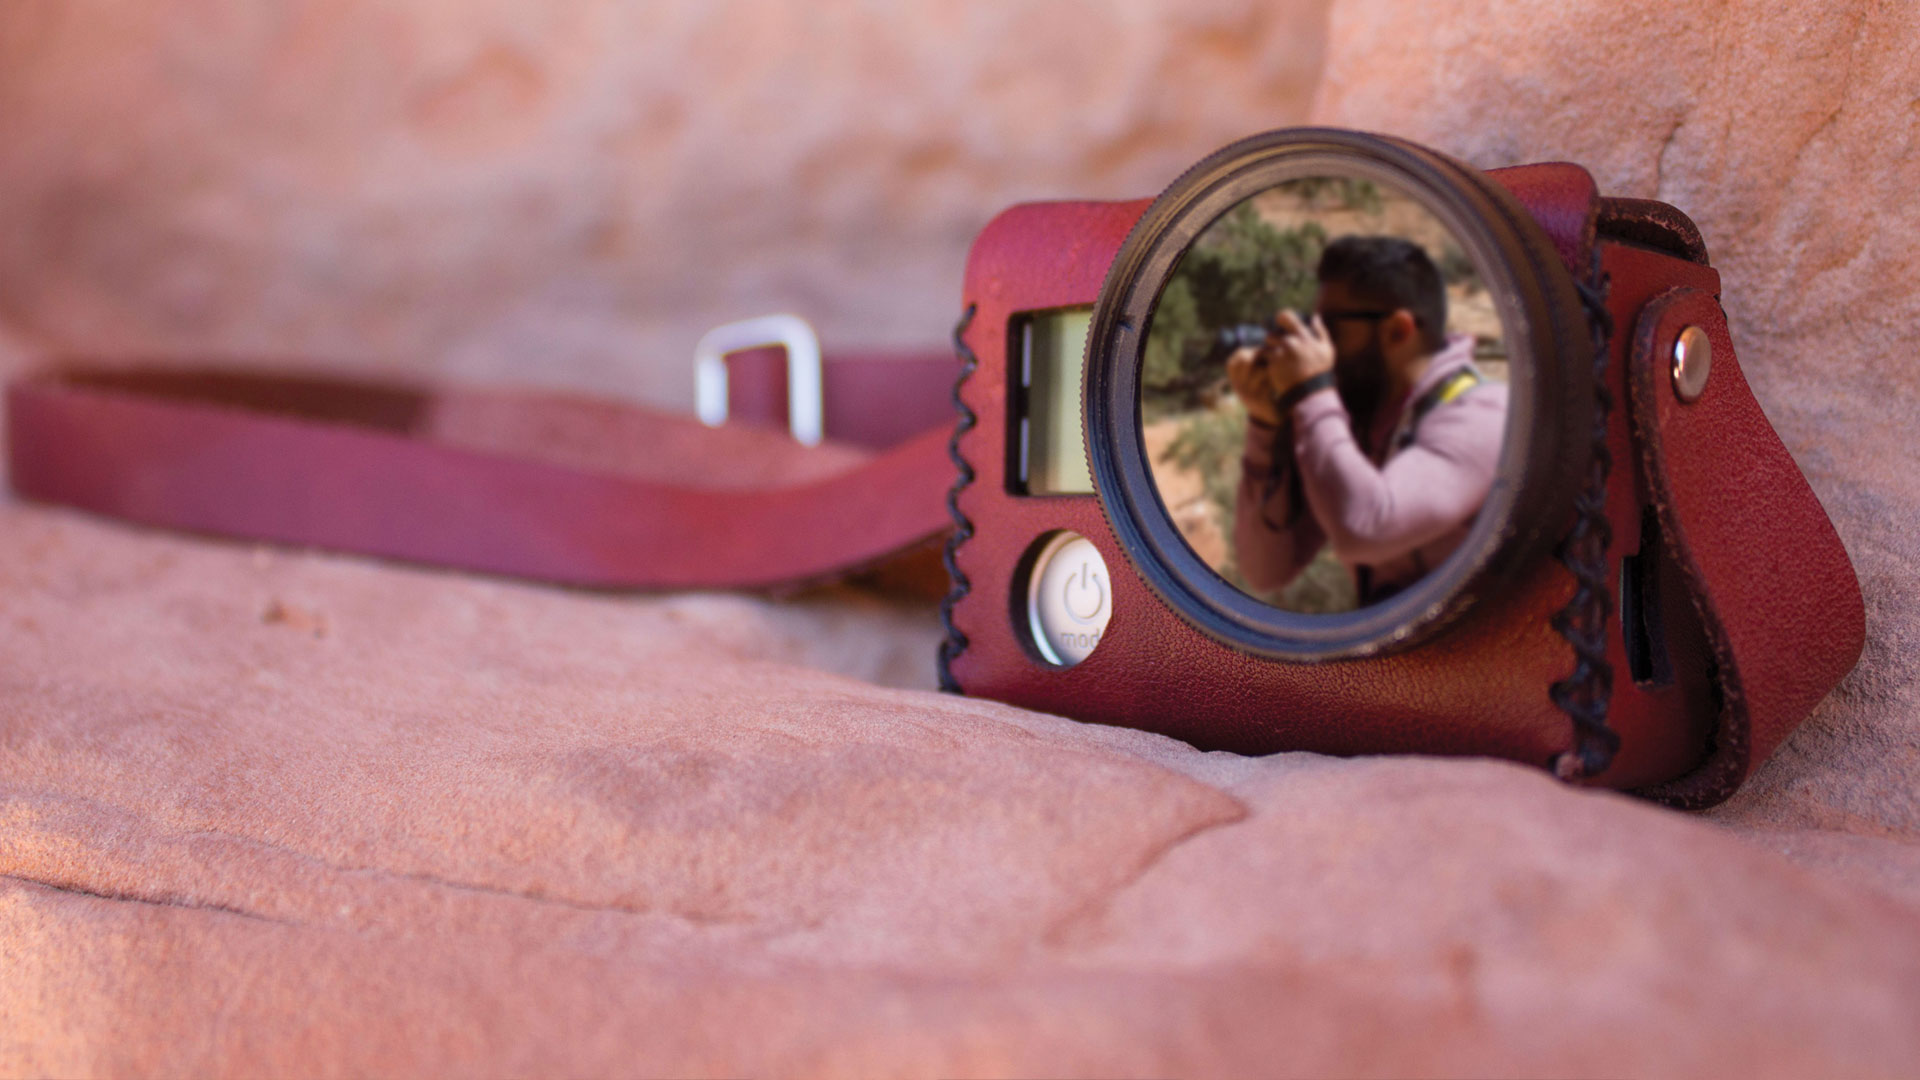 The Travler Leather GoPro Case